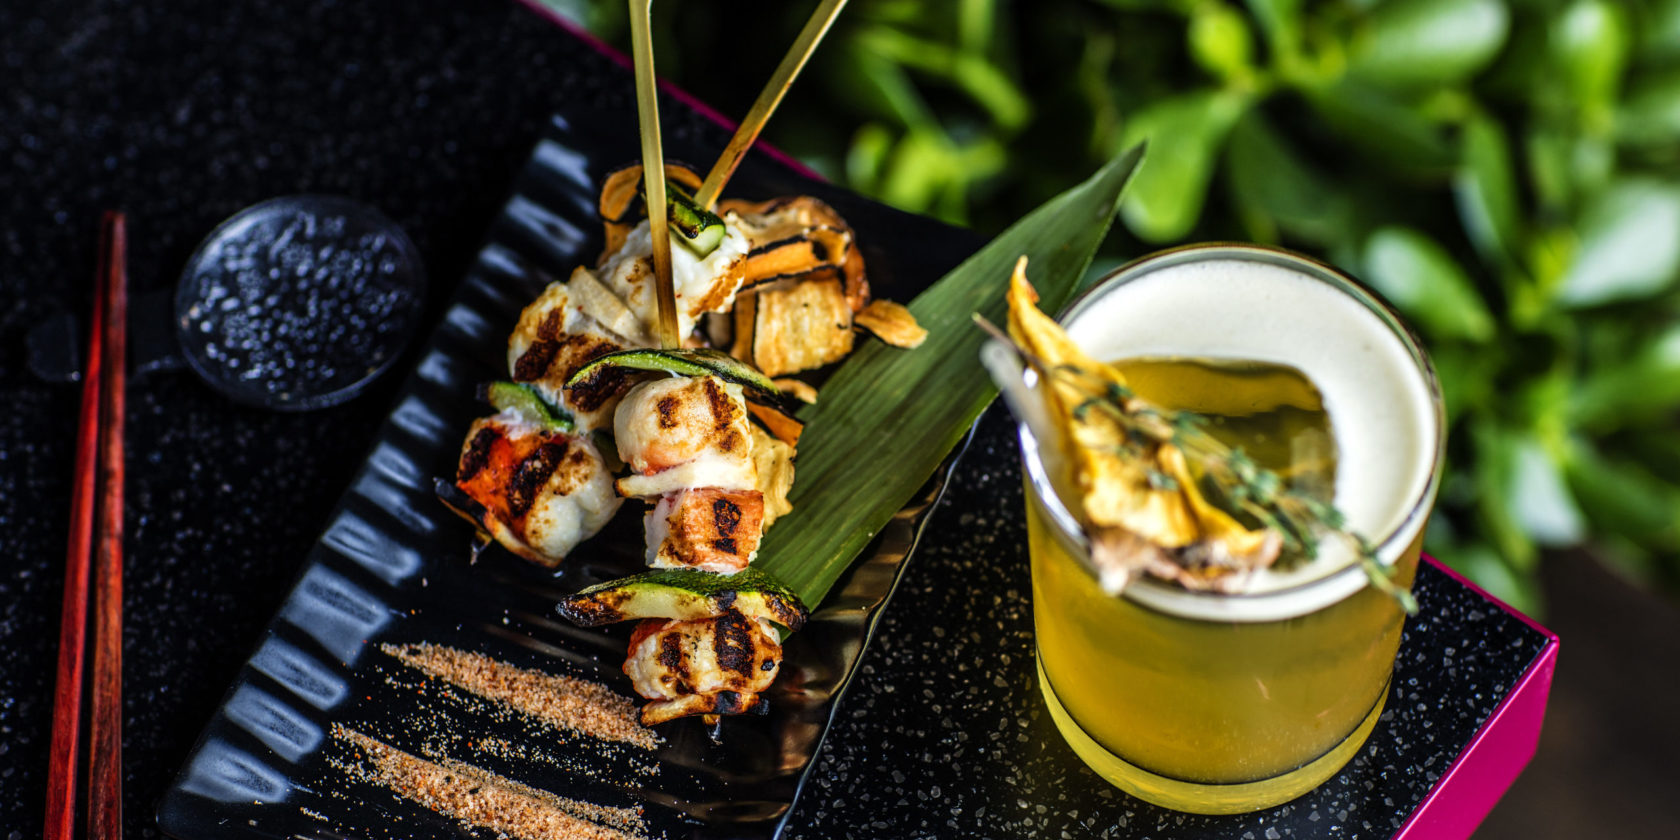 Scallop and Asparagus Skewers with Specialty Cocktail